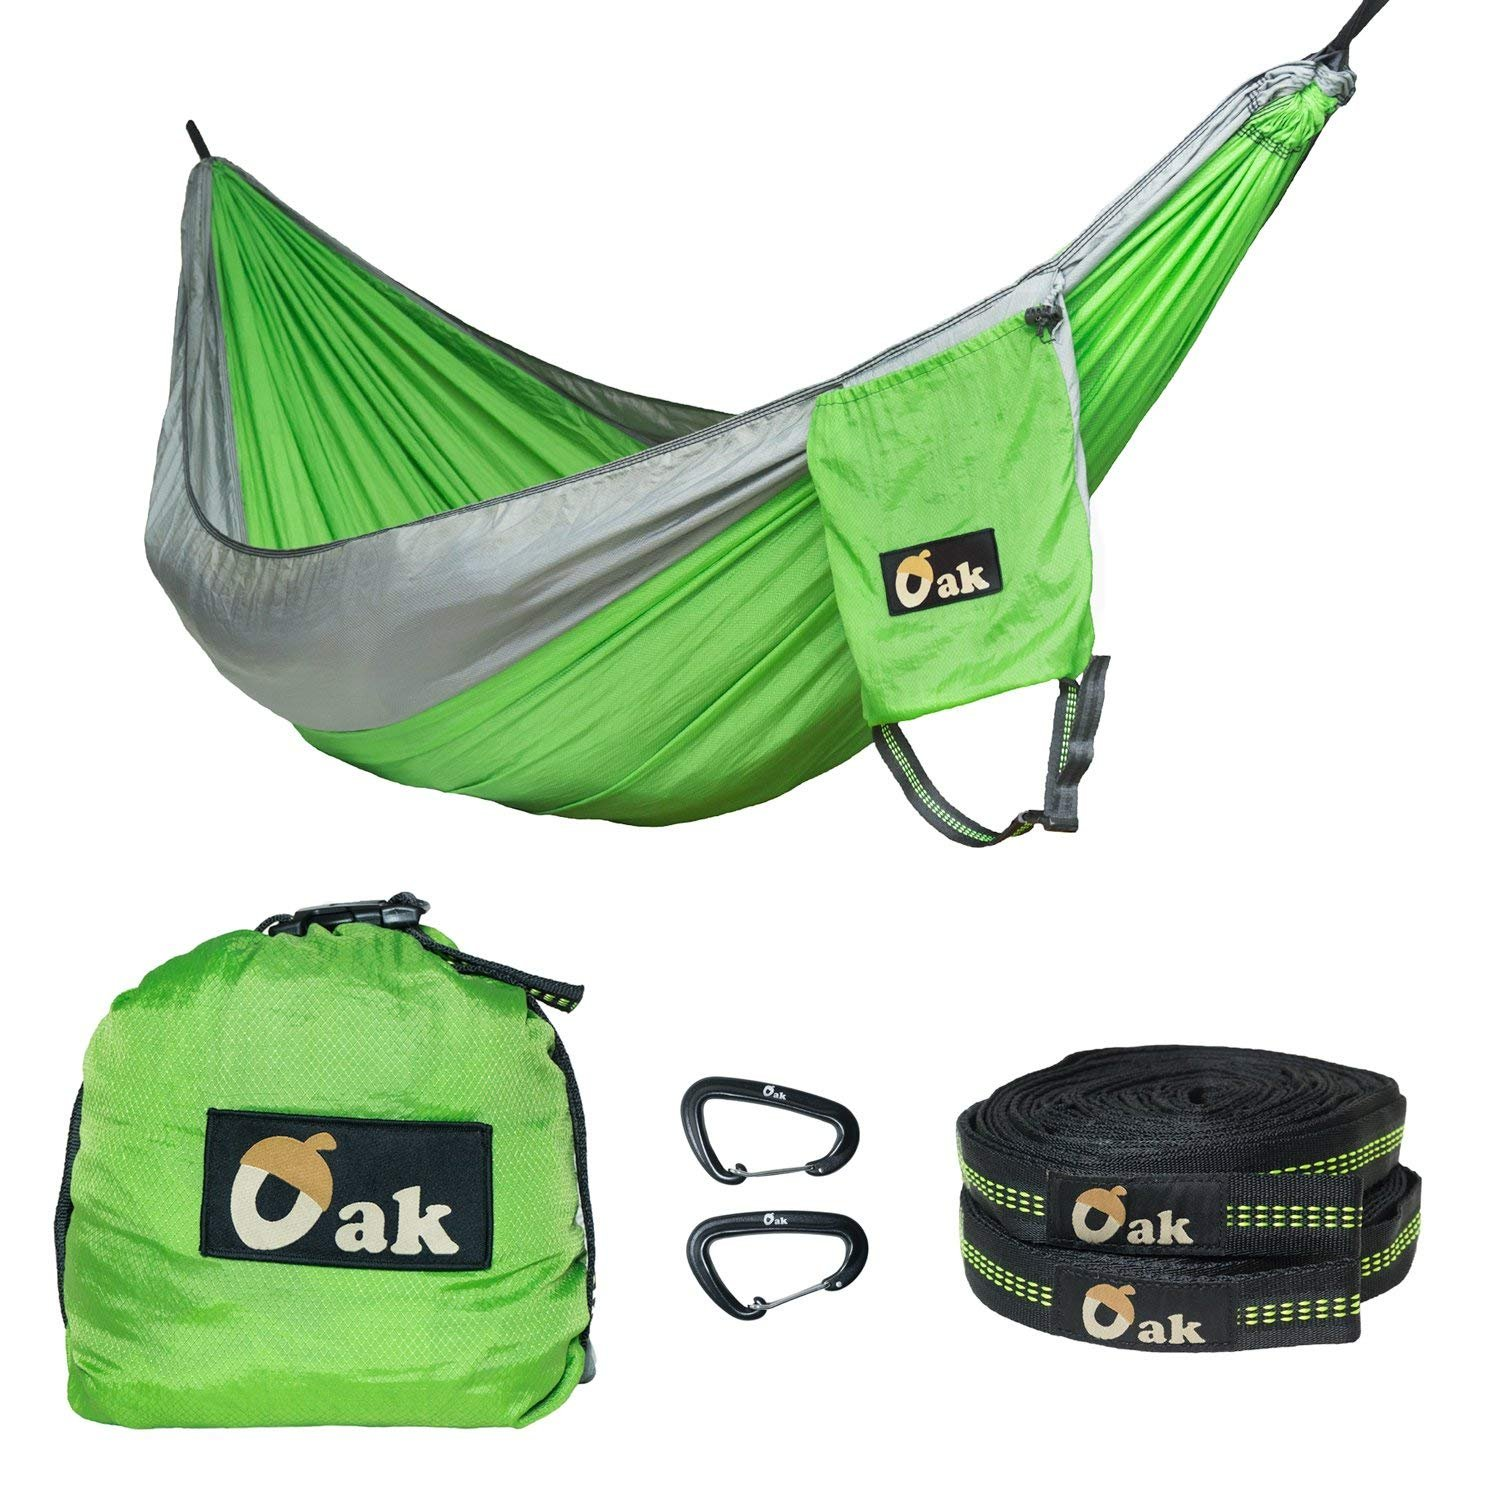 Gear Lab Store Oak – New Diamond Tech Ripstop Nylon Hammock, 2 XL Tree Straps 30 ft Total, Holds 2200 lbs , and 2 High Strength Aluminum Carabiners 5 kN